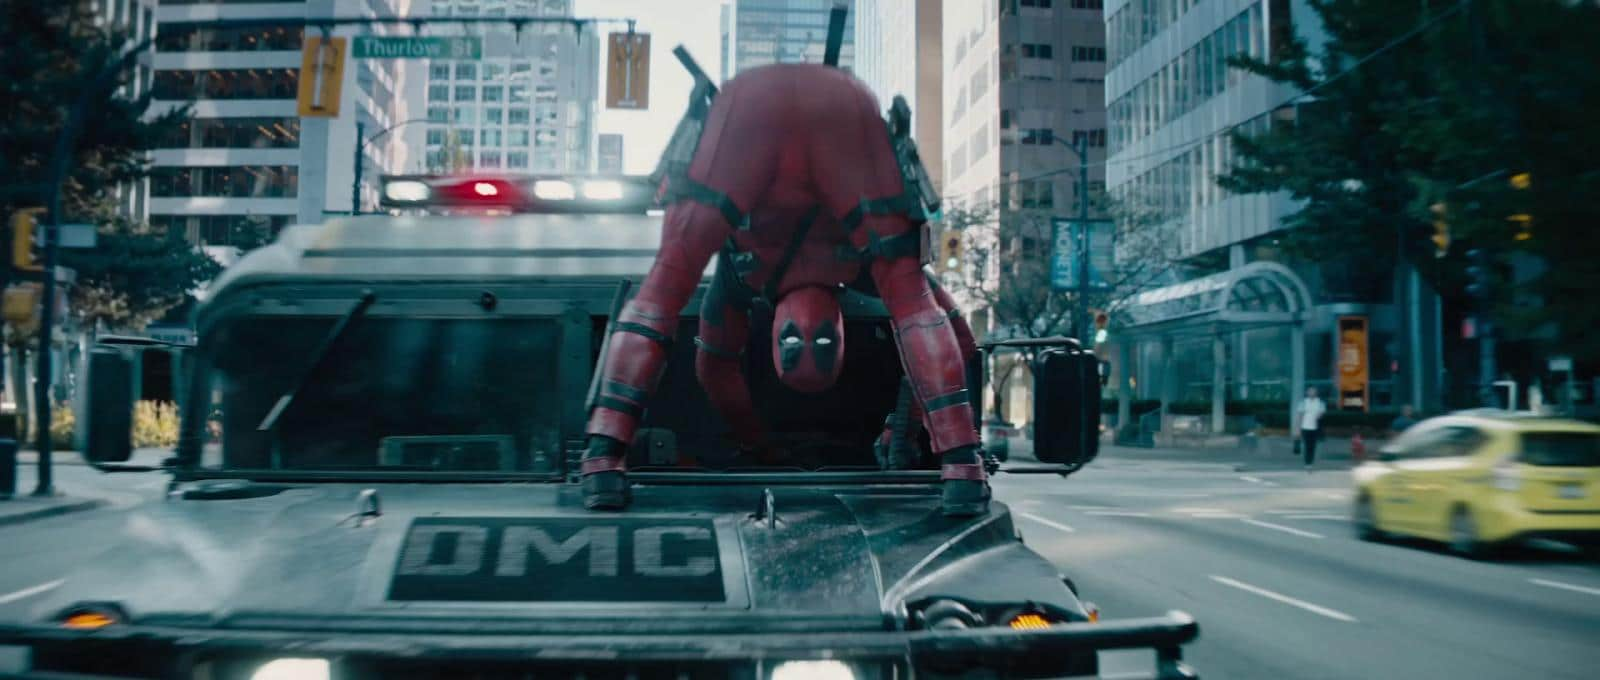 Deadpool 2 Ending And Post Credits Scene Explained